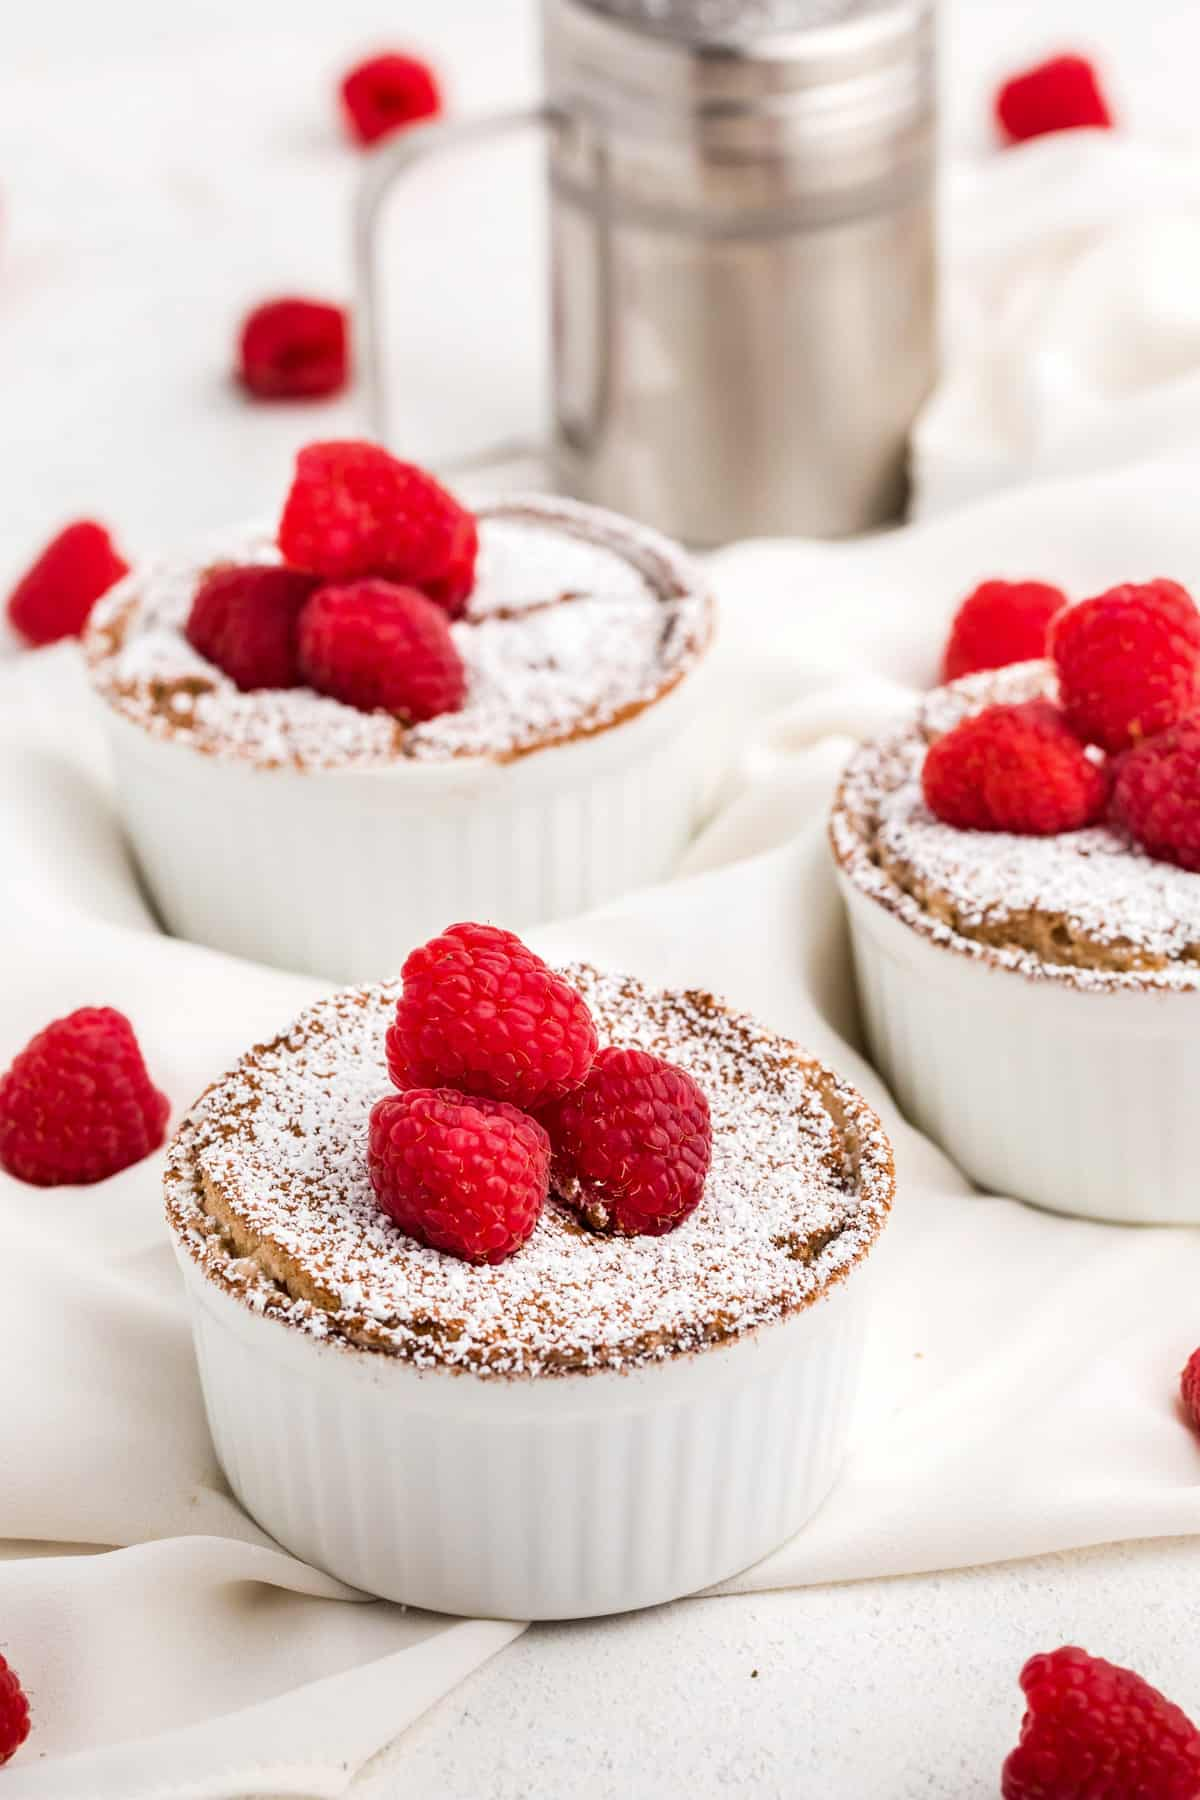 Chocolate Soufflés topped with powdered sugar and raspberries